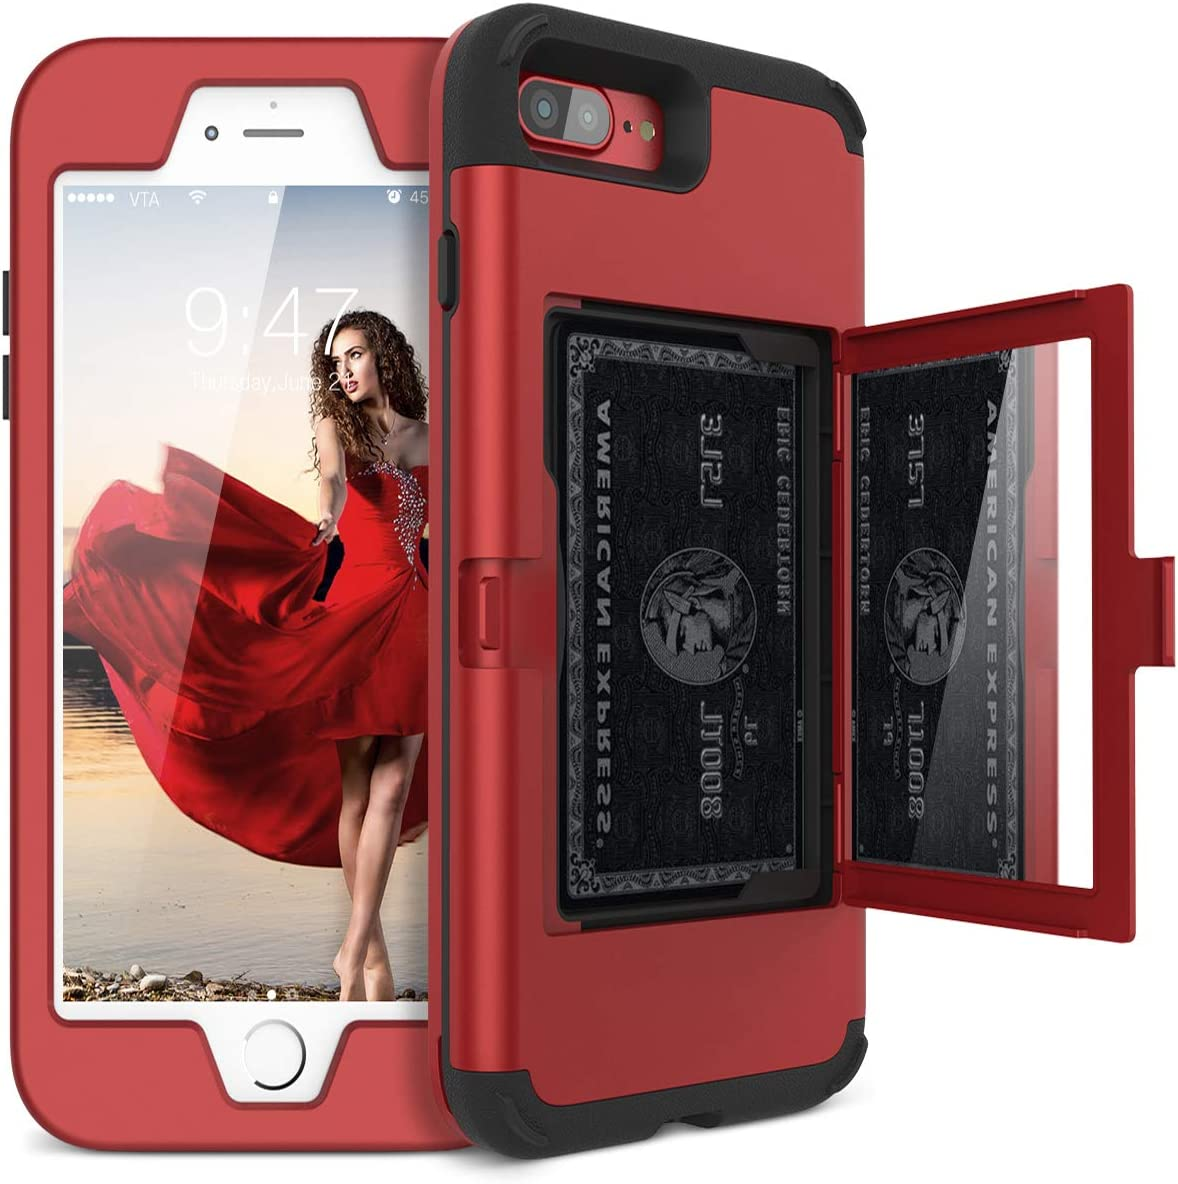 iPhone 8 Plus / 7 Plus Wallet Case - WeLoveCase Defender Wallet Design with Hidden Back Mirror and Card Holder Heavy Duty Hybrid Shockproof Armor Full Protective Case for iPhone 8 Plus/7 Plus - Red